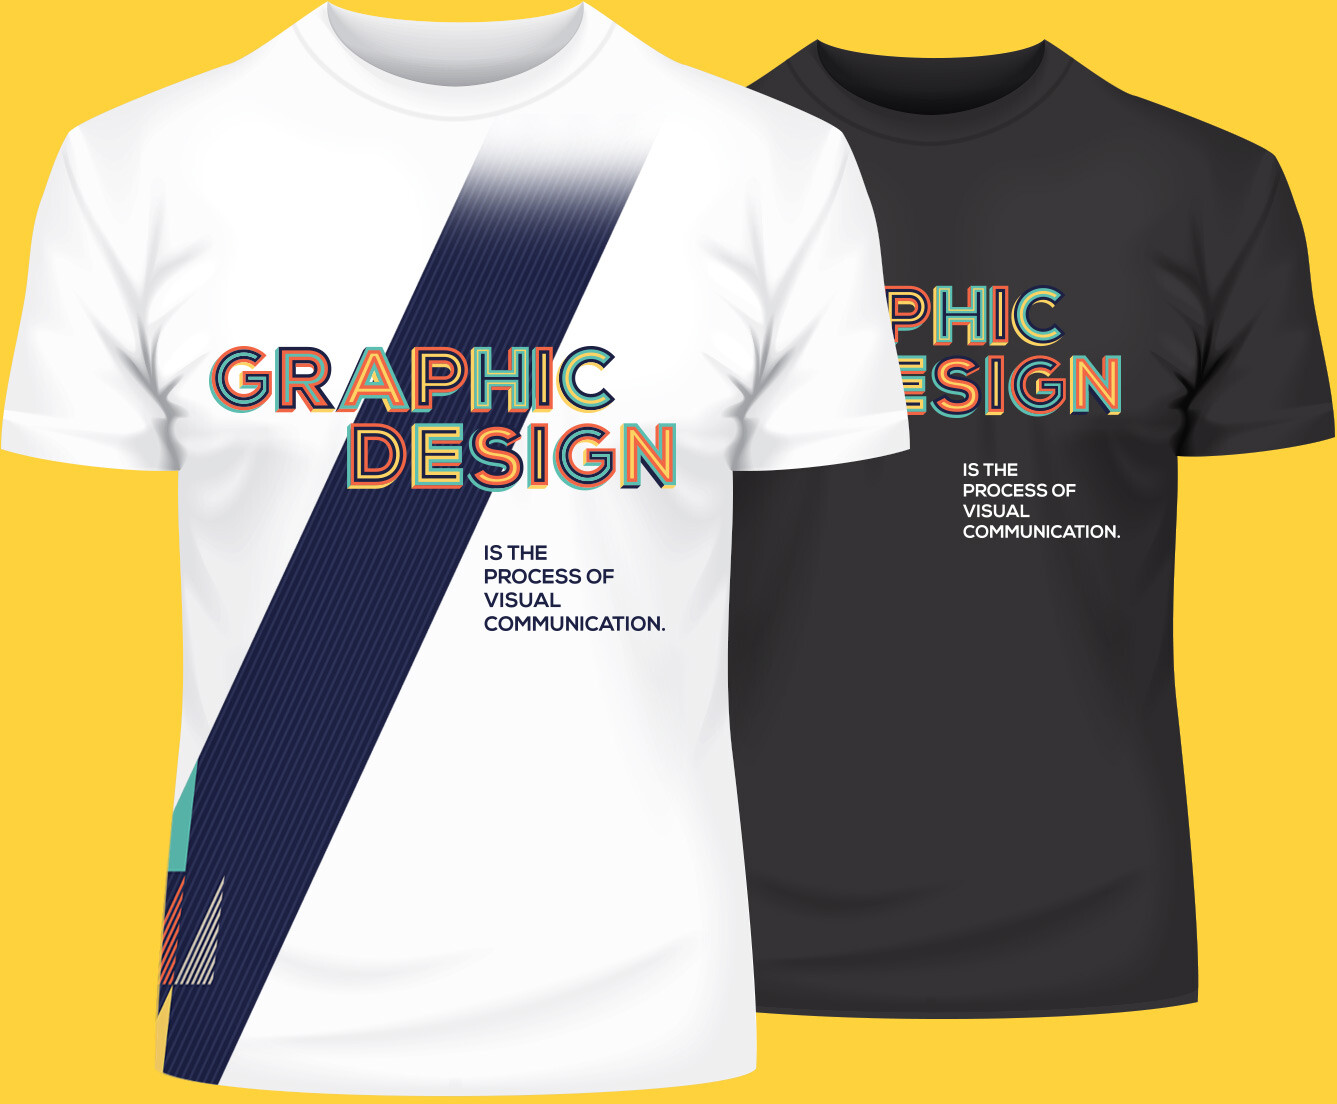 Custom Printed Best T-Shirts Online - Design Your Own T-Shirts